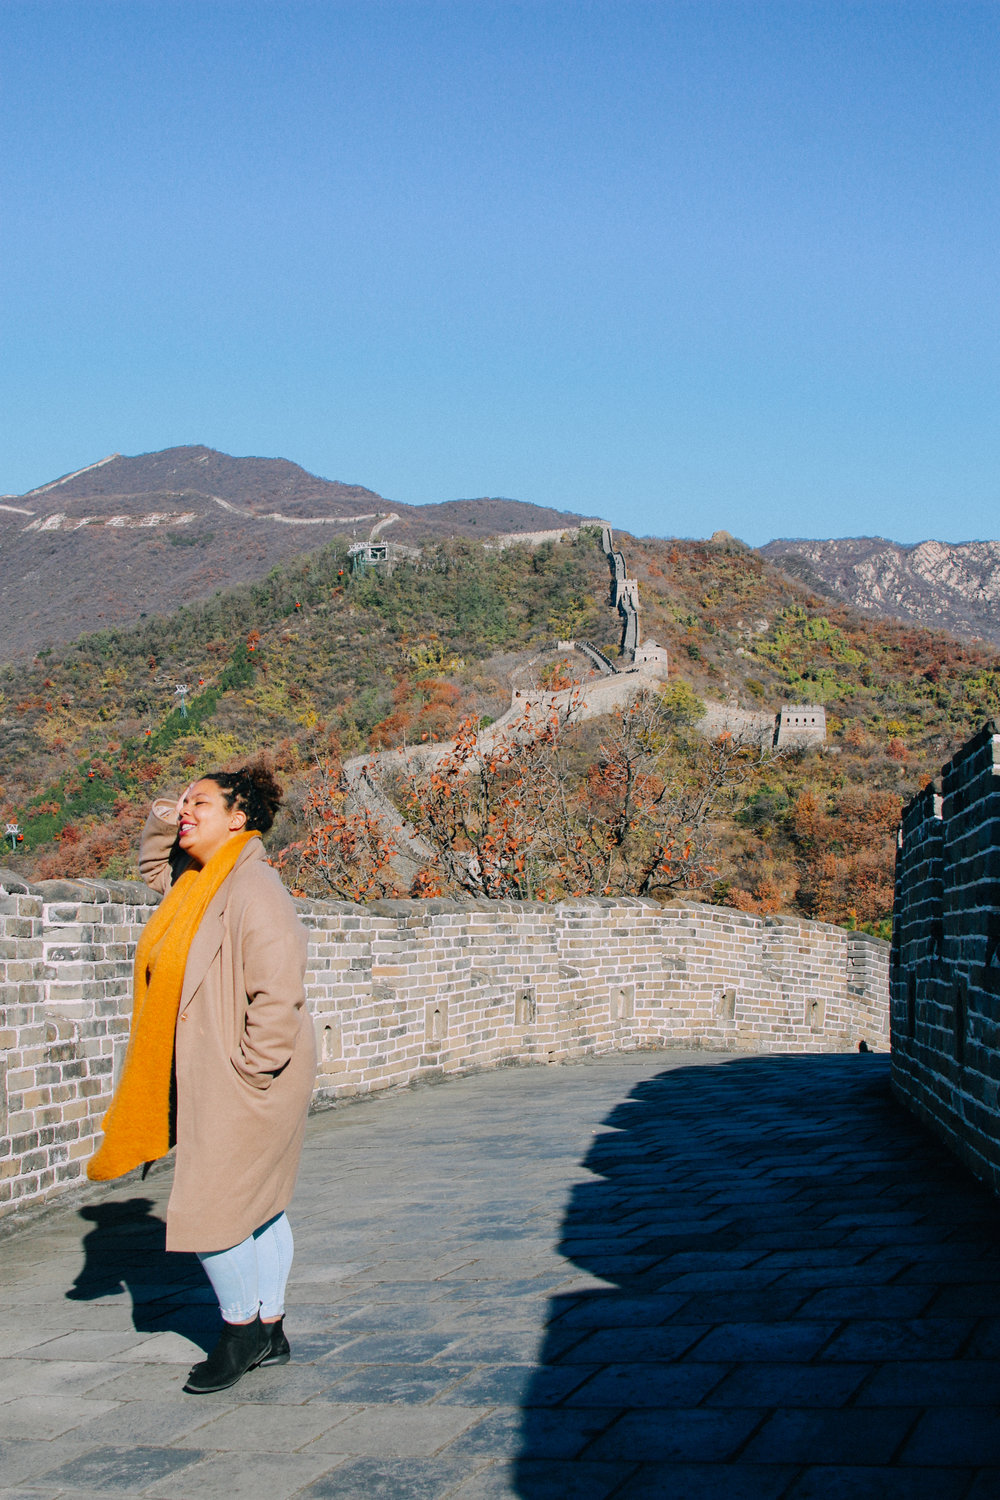 GreatWall-26.jpg